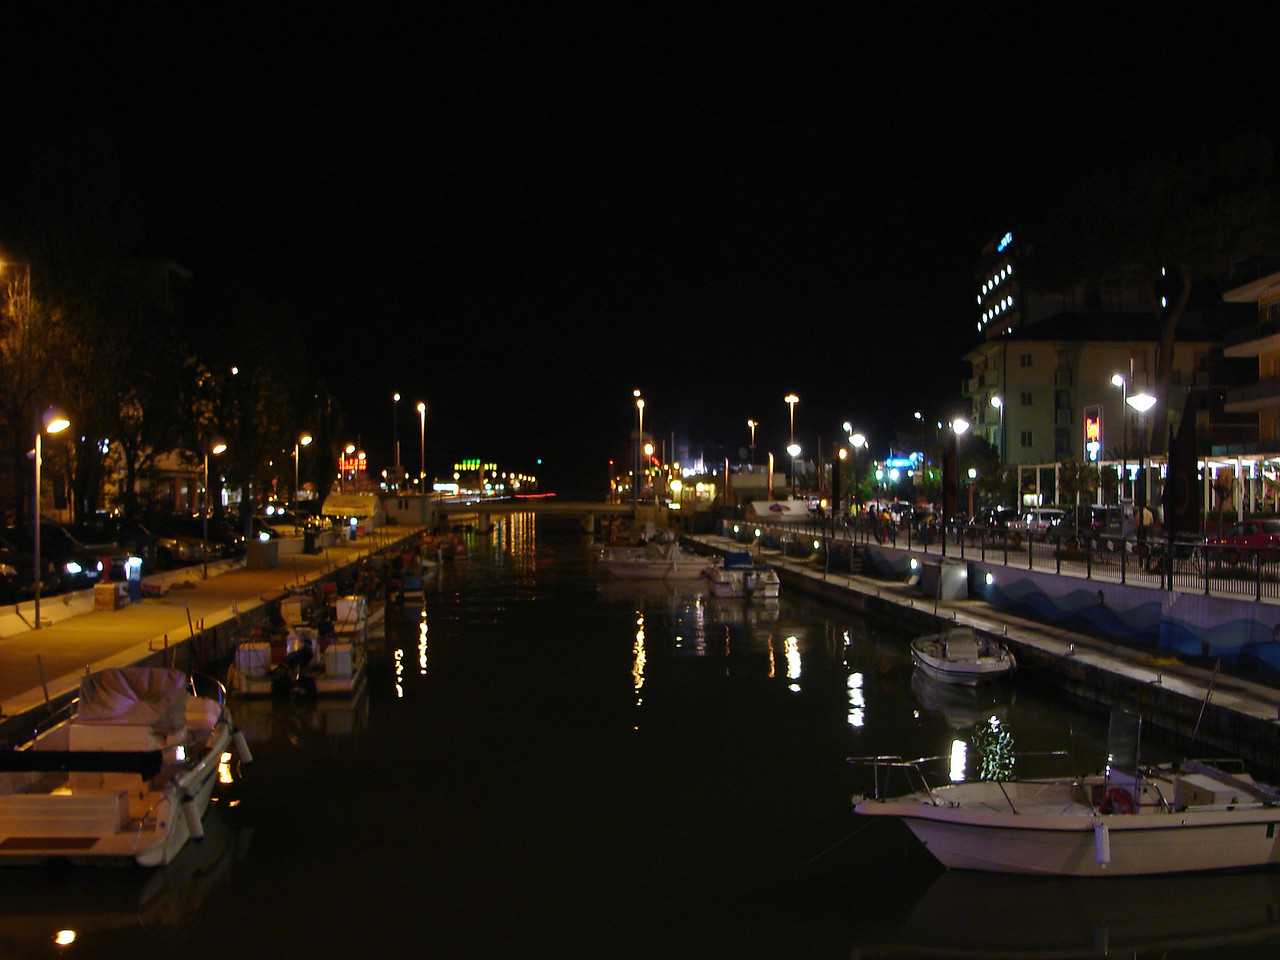 the canal at night.